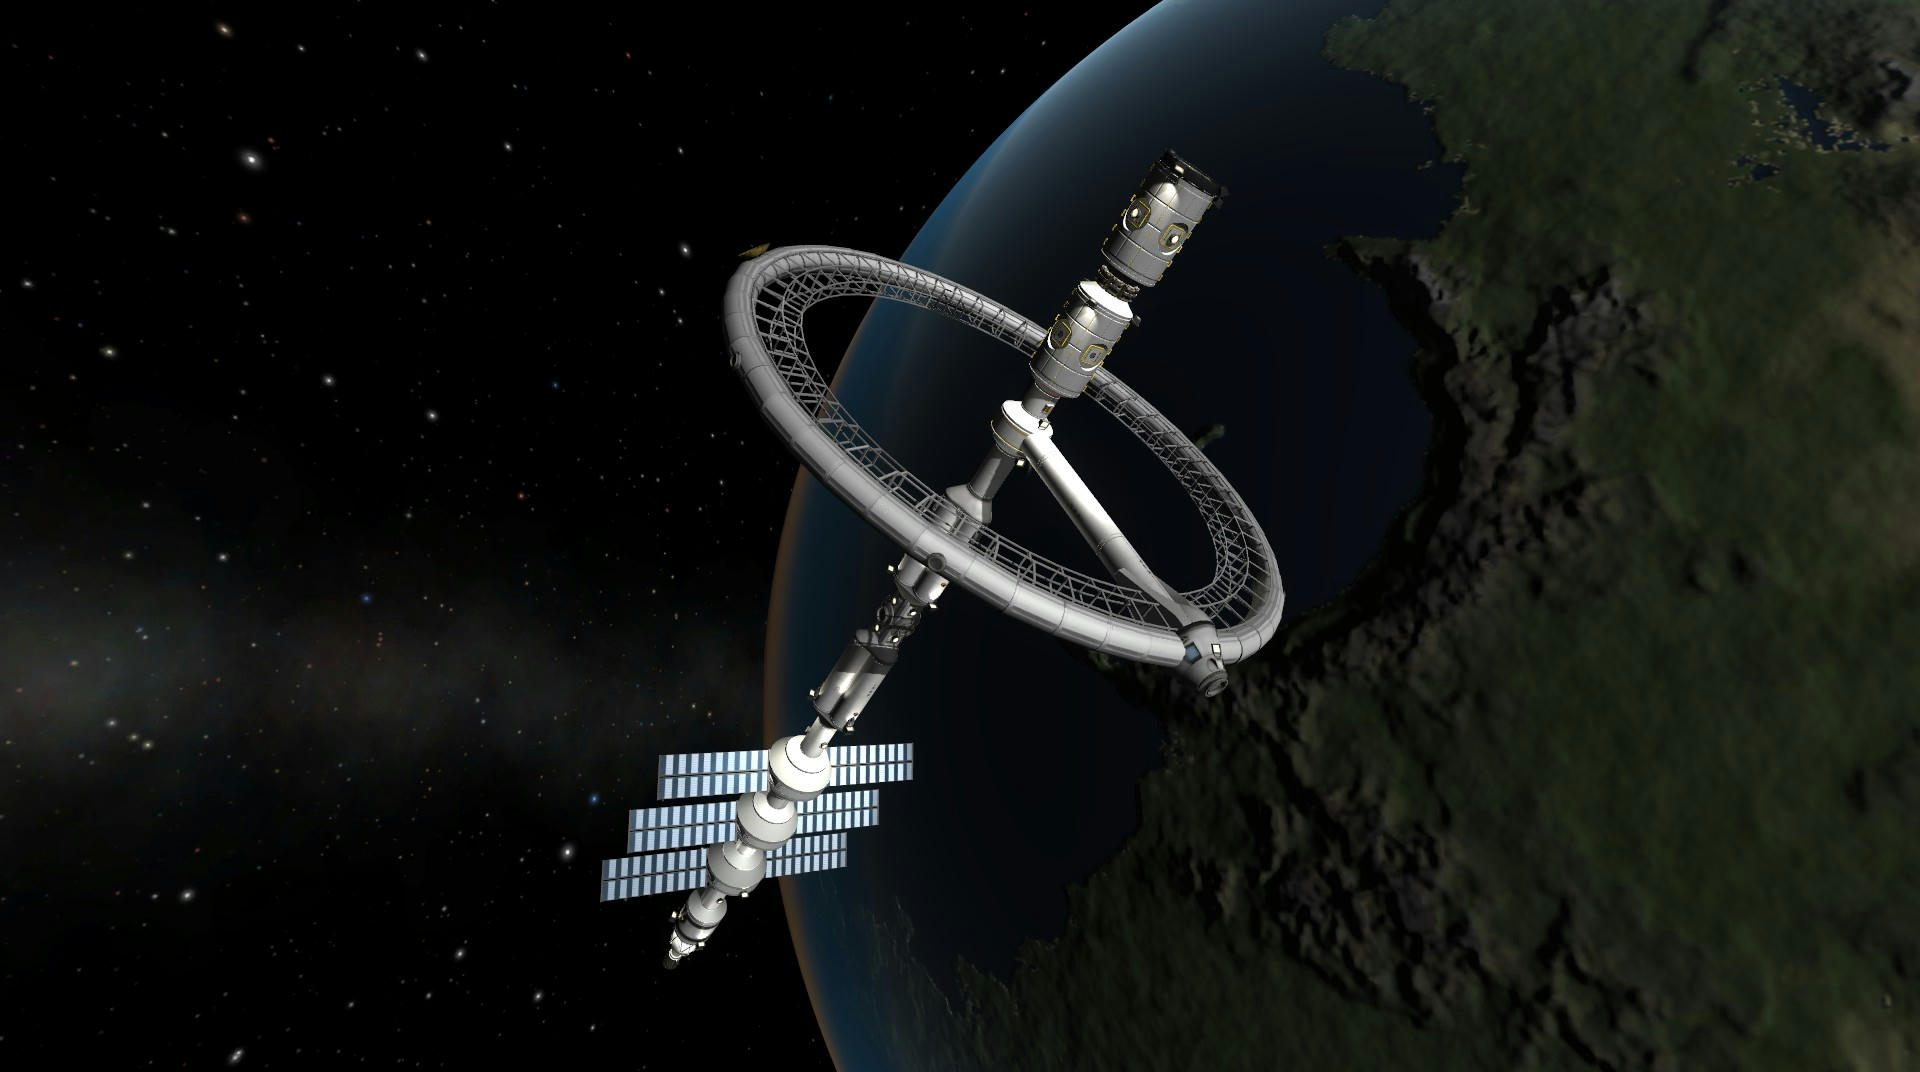 KSP Build Space Station (page 3) - Pics about space